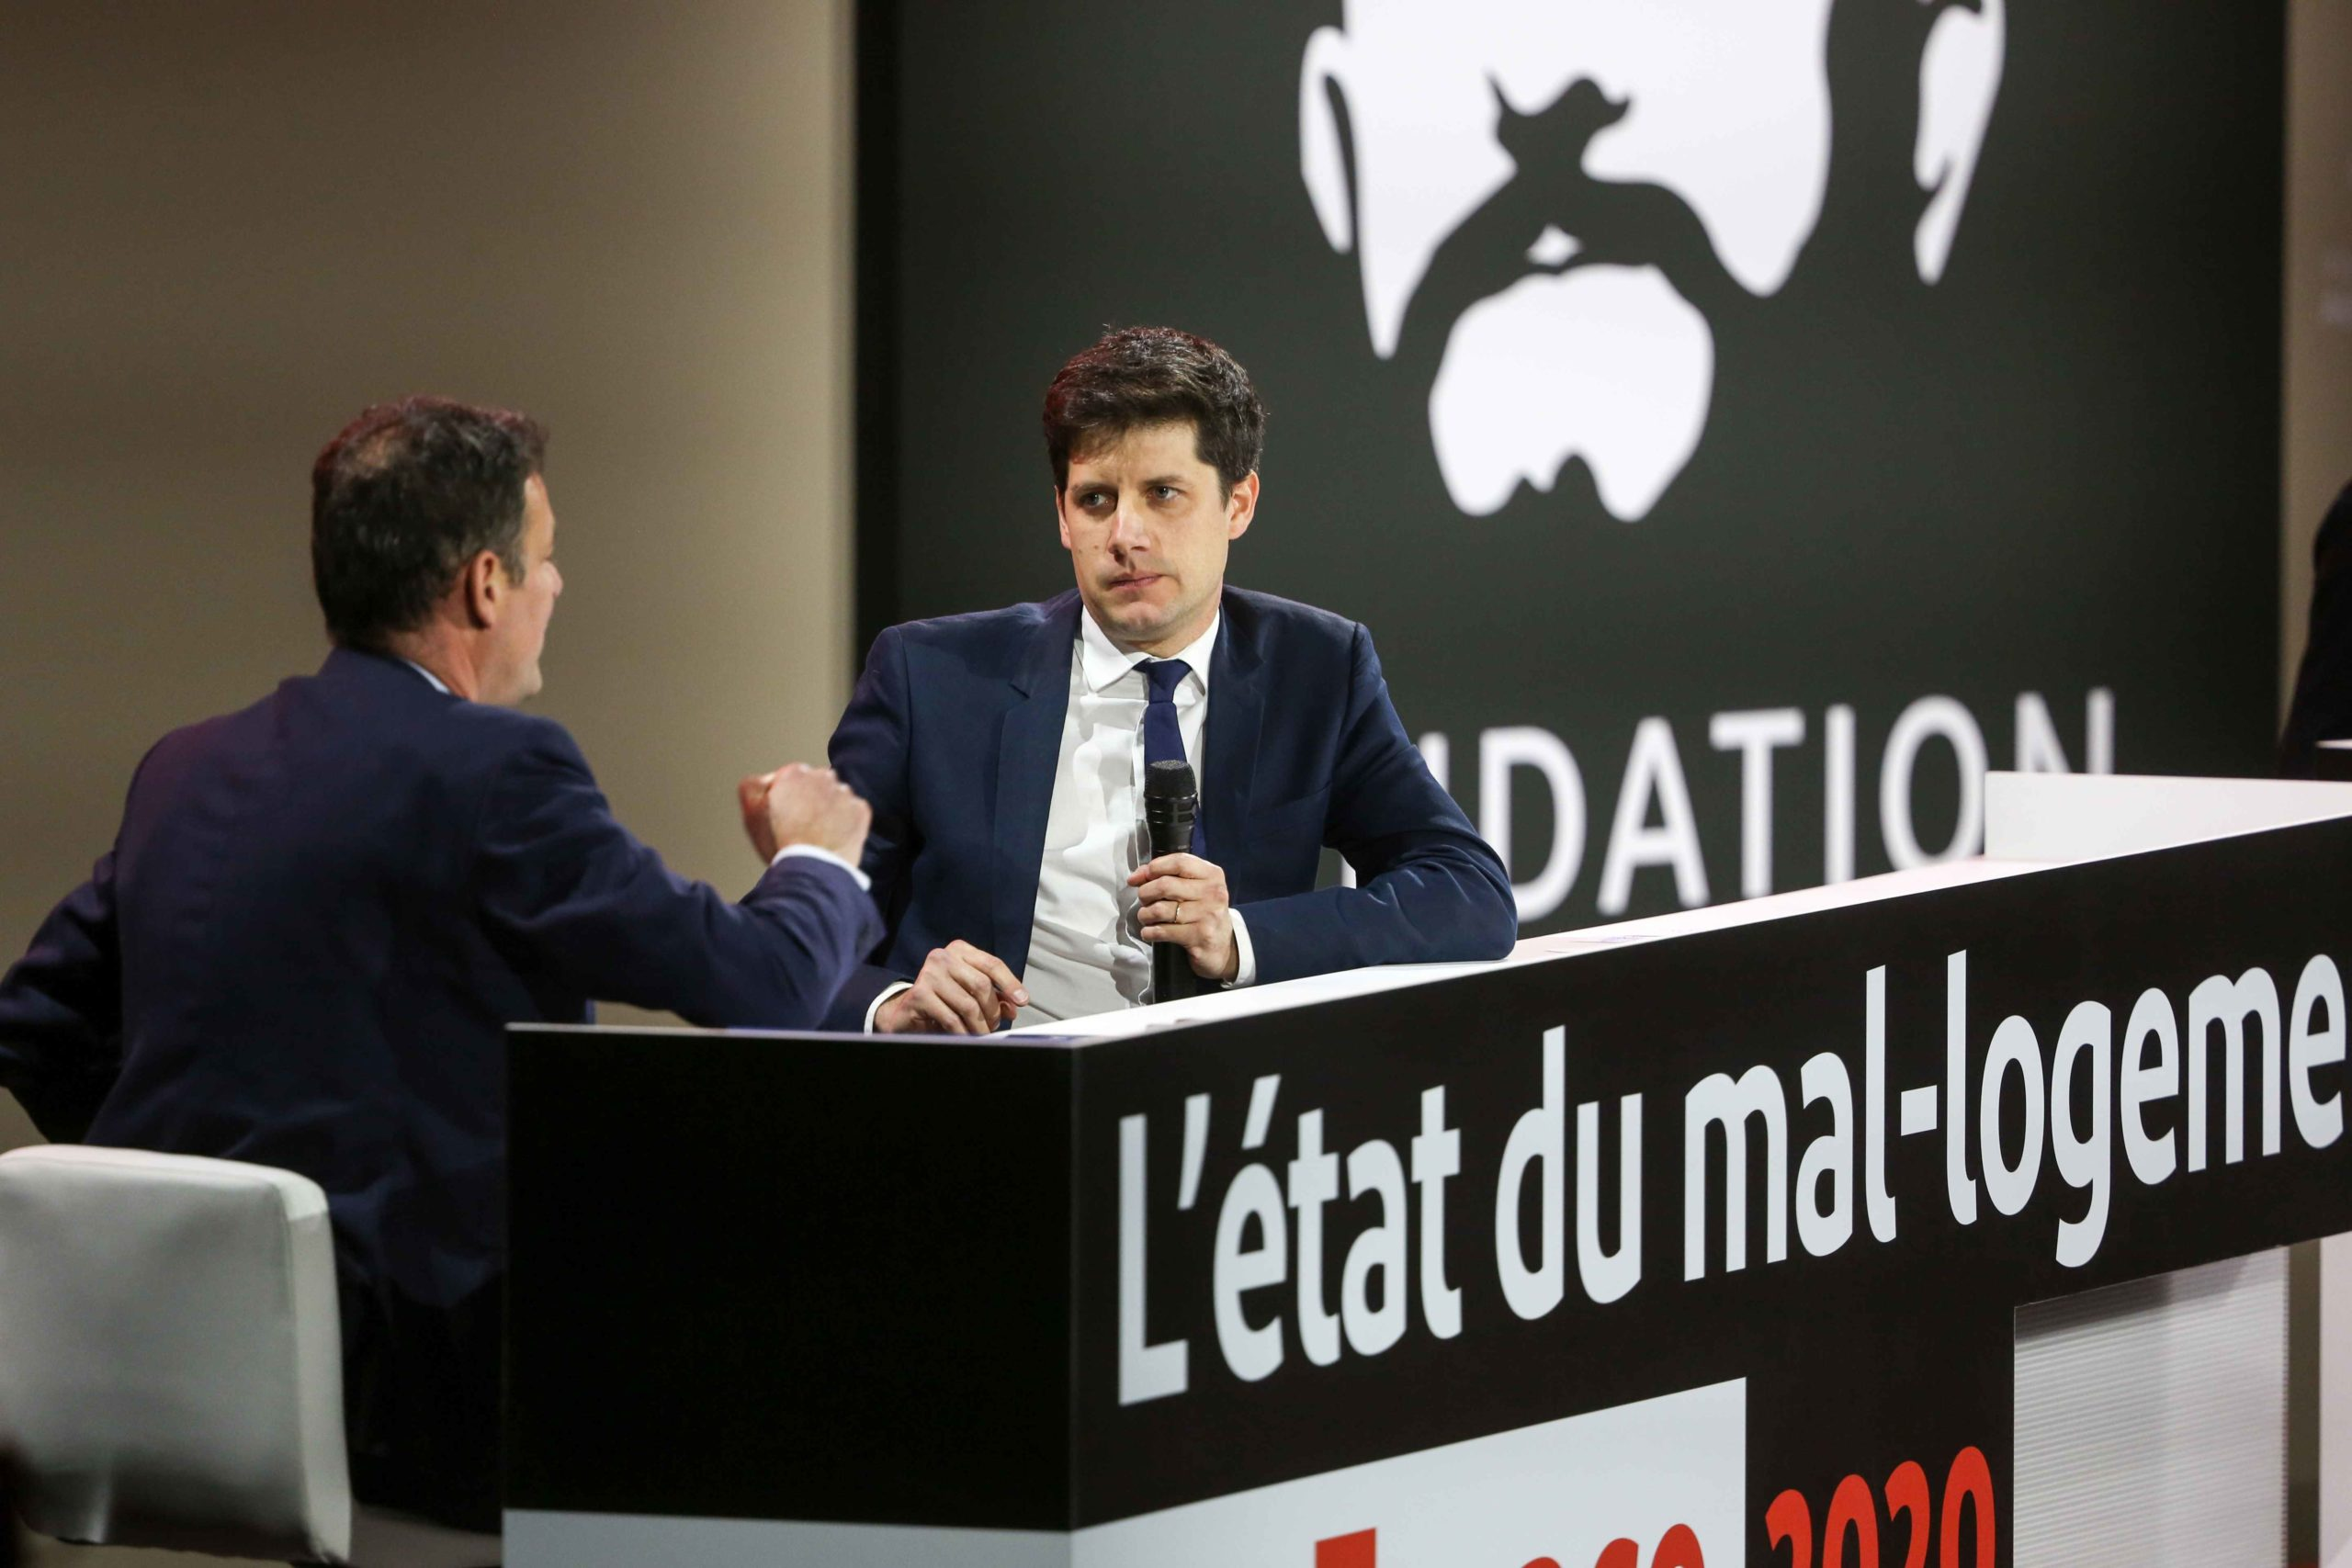 French Junior Minister for Cities and Housing Julien Denormandie (C) takes part in a debate during a report of the Abbe Pierre Foundation on poor quality housing conditions, on January 31, 2020 in La Defense, near Paris.